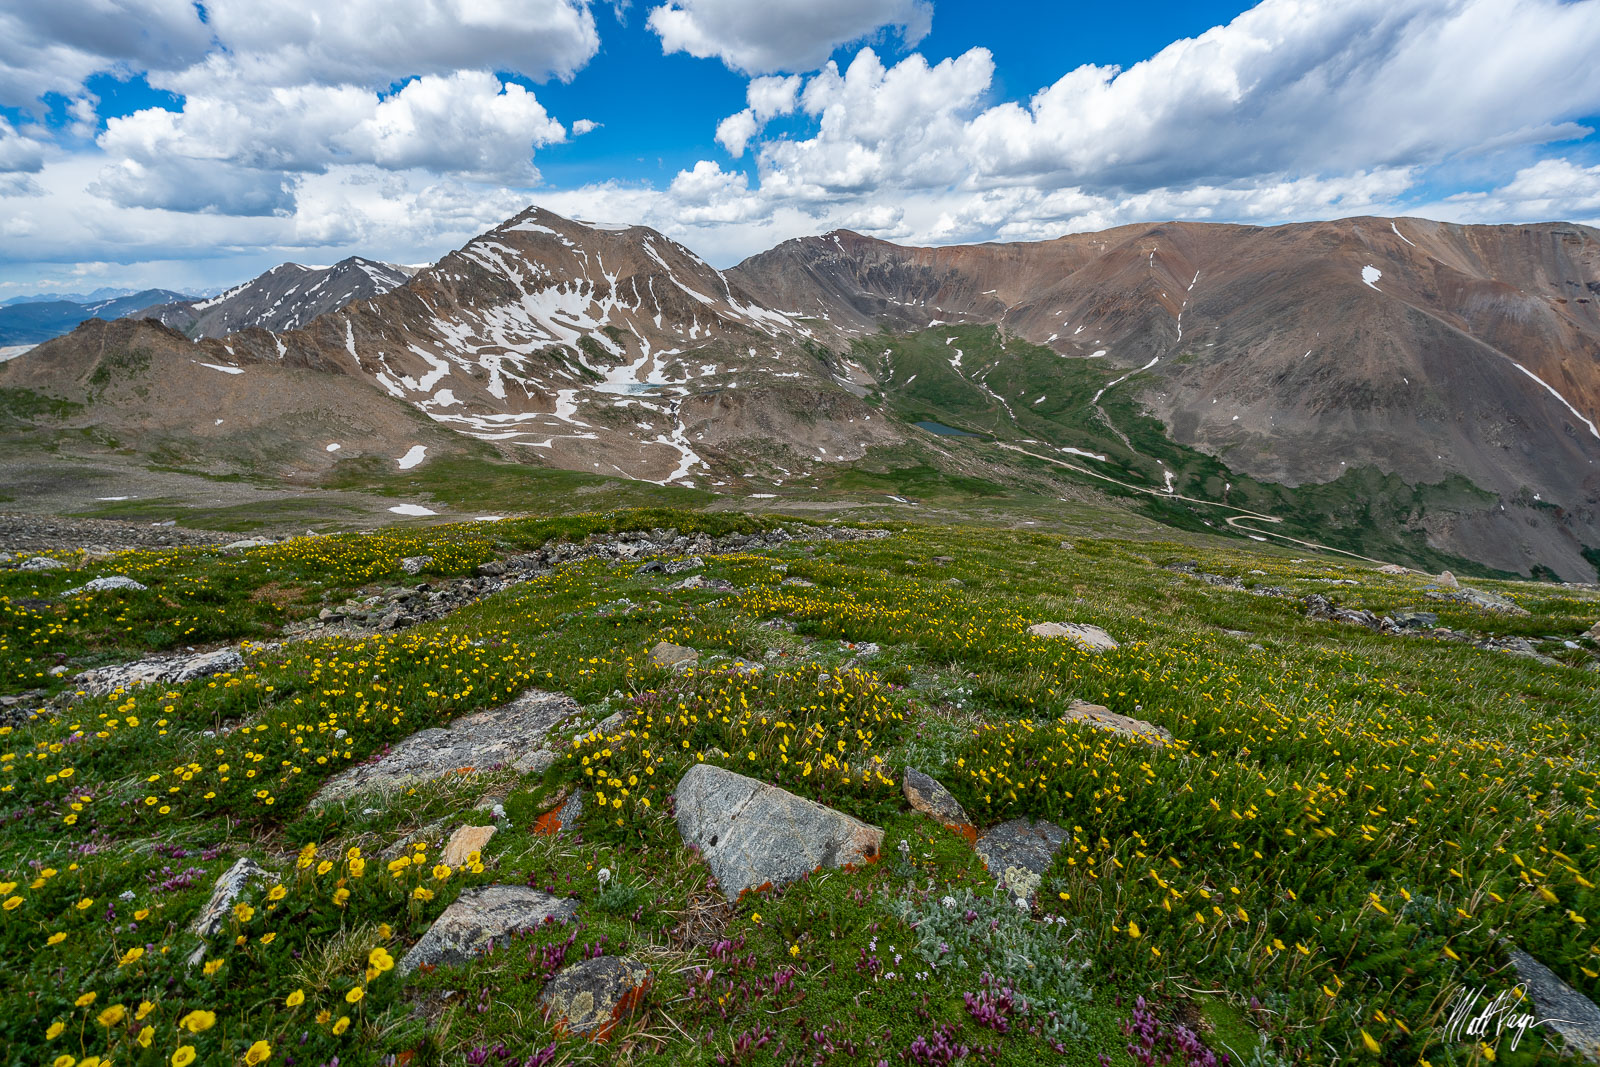 13er, 14ers, Clouds, Colorado, June, Kite Lake, Lake Emma, Landscape, Mount Bross, Mount Democrat, Mount Lincoln, Mountains, Wildflowers, photo